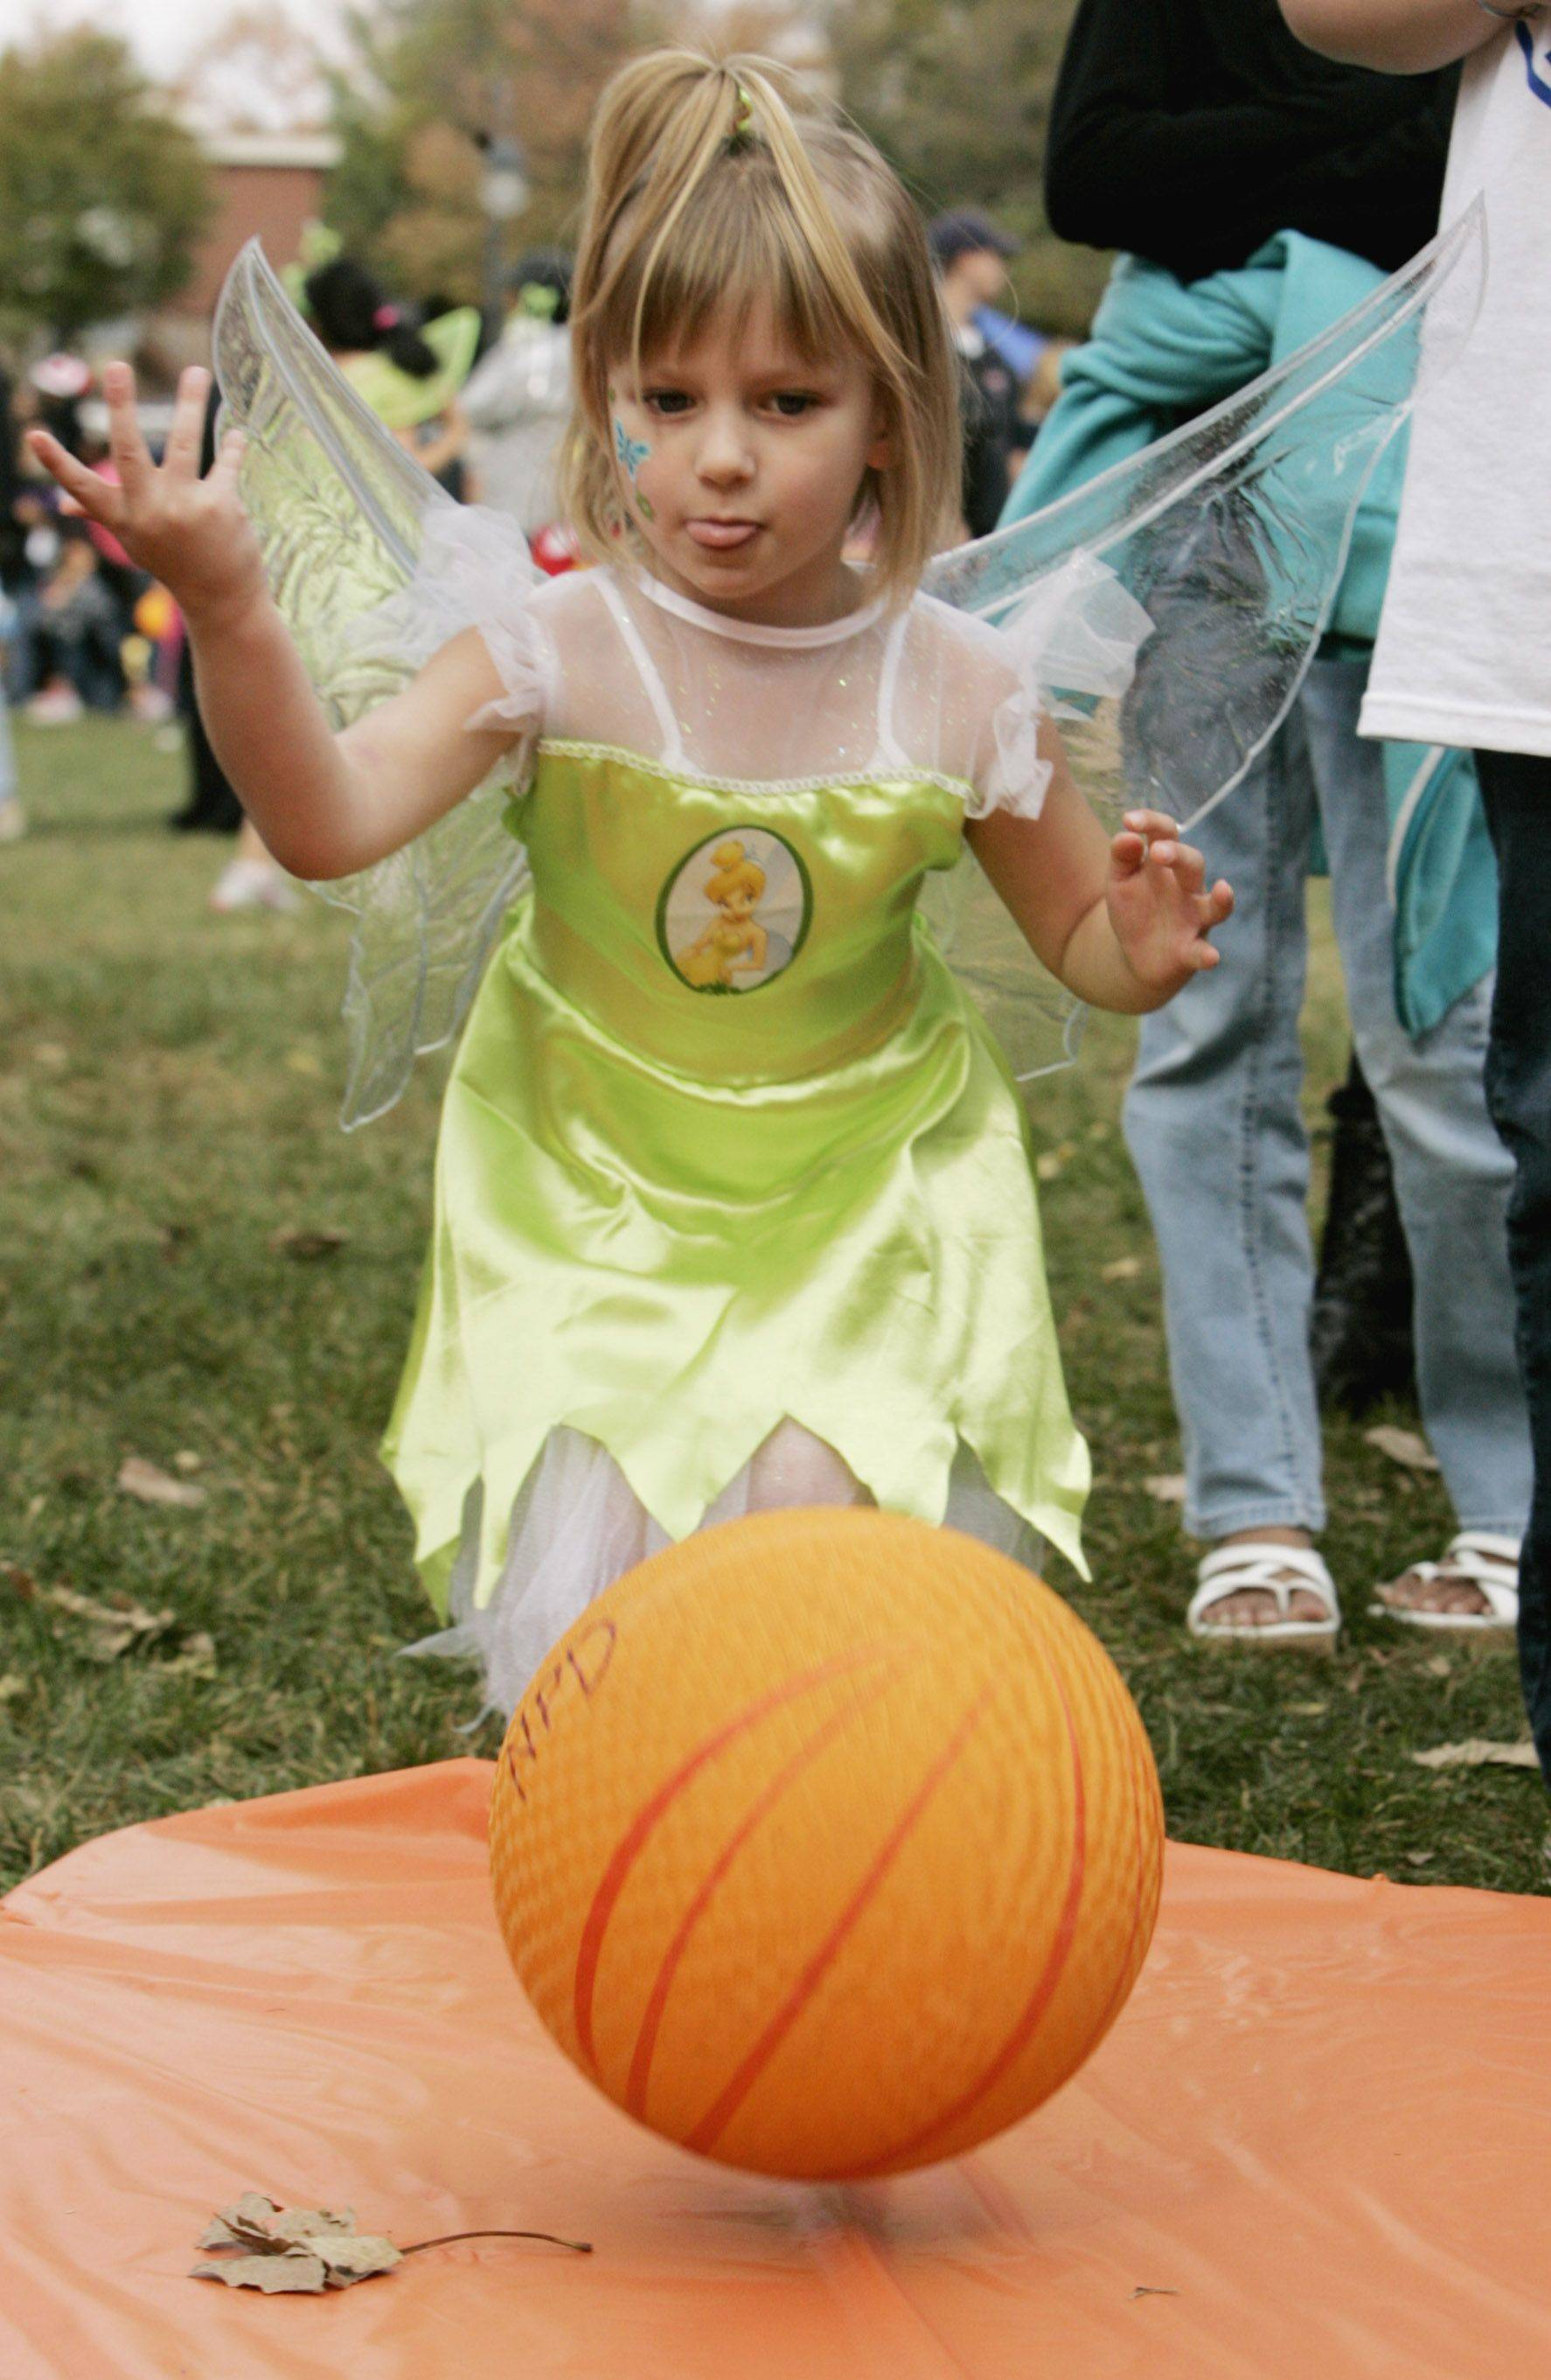 Ava Gusel,4, of Downers Grove plays a Halloween bowling game Sunday as part of the Halloween Happening at the Grand Pavilion along Naperville's Riverwalk.